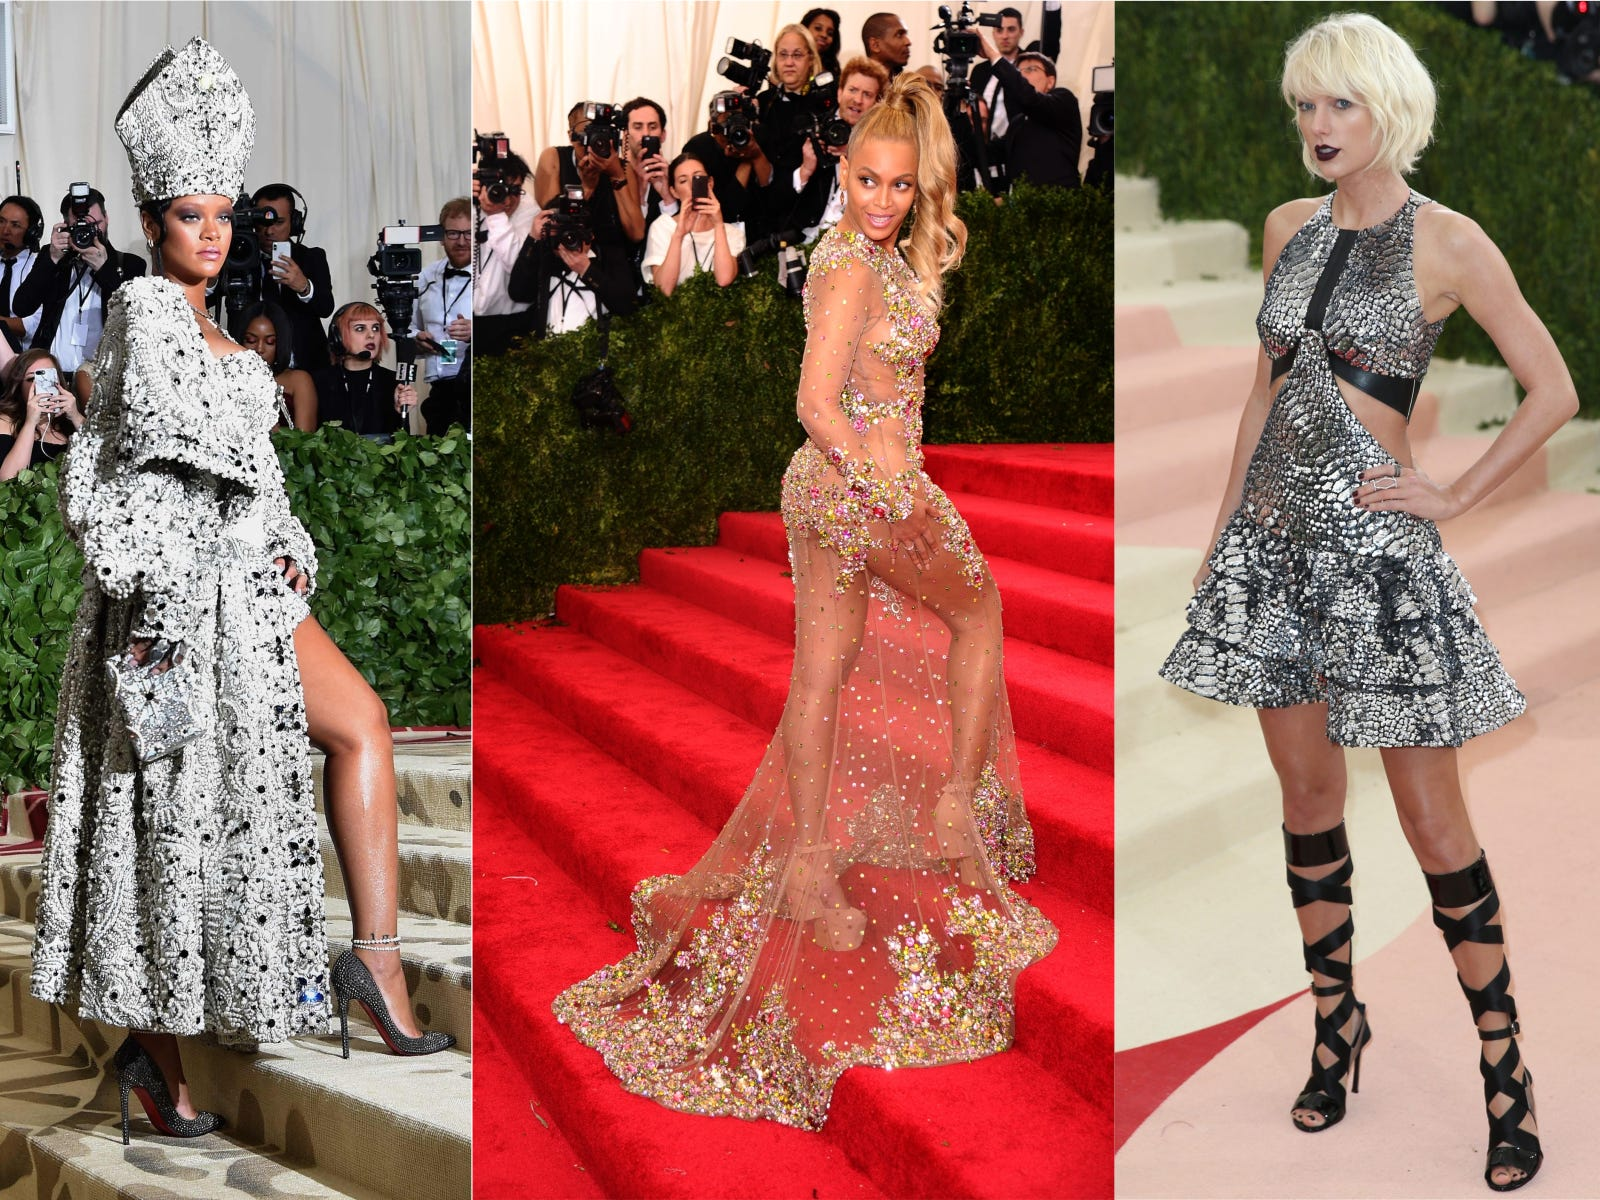 Rihanna, Beyonce and Taylor Swift were noticeably absent from the 2019 Met Gala.